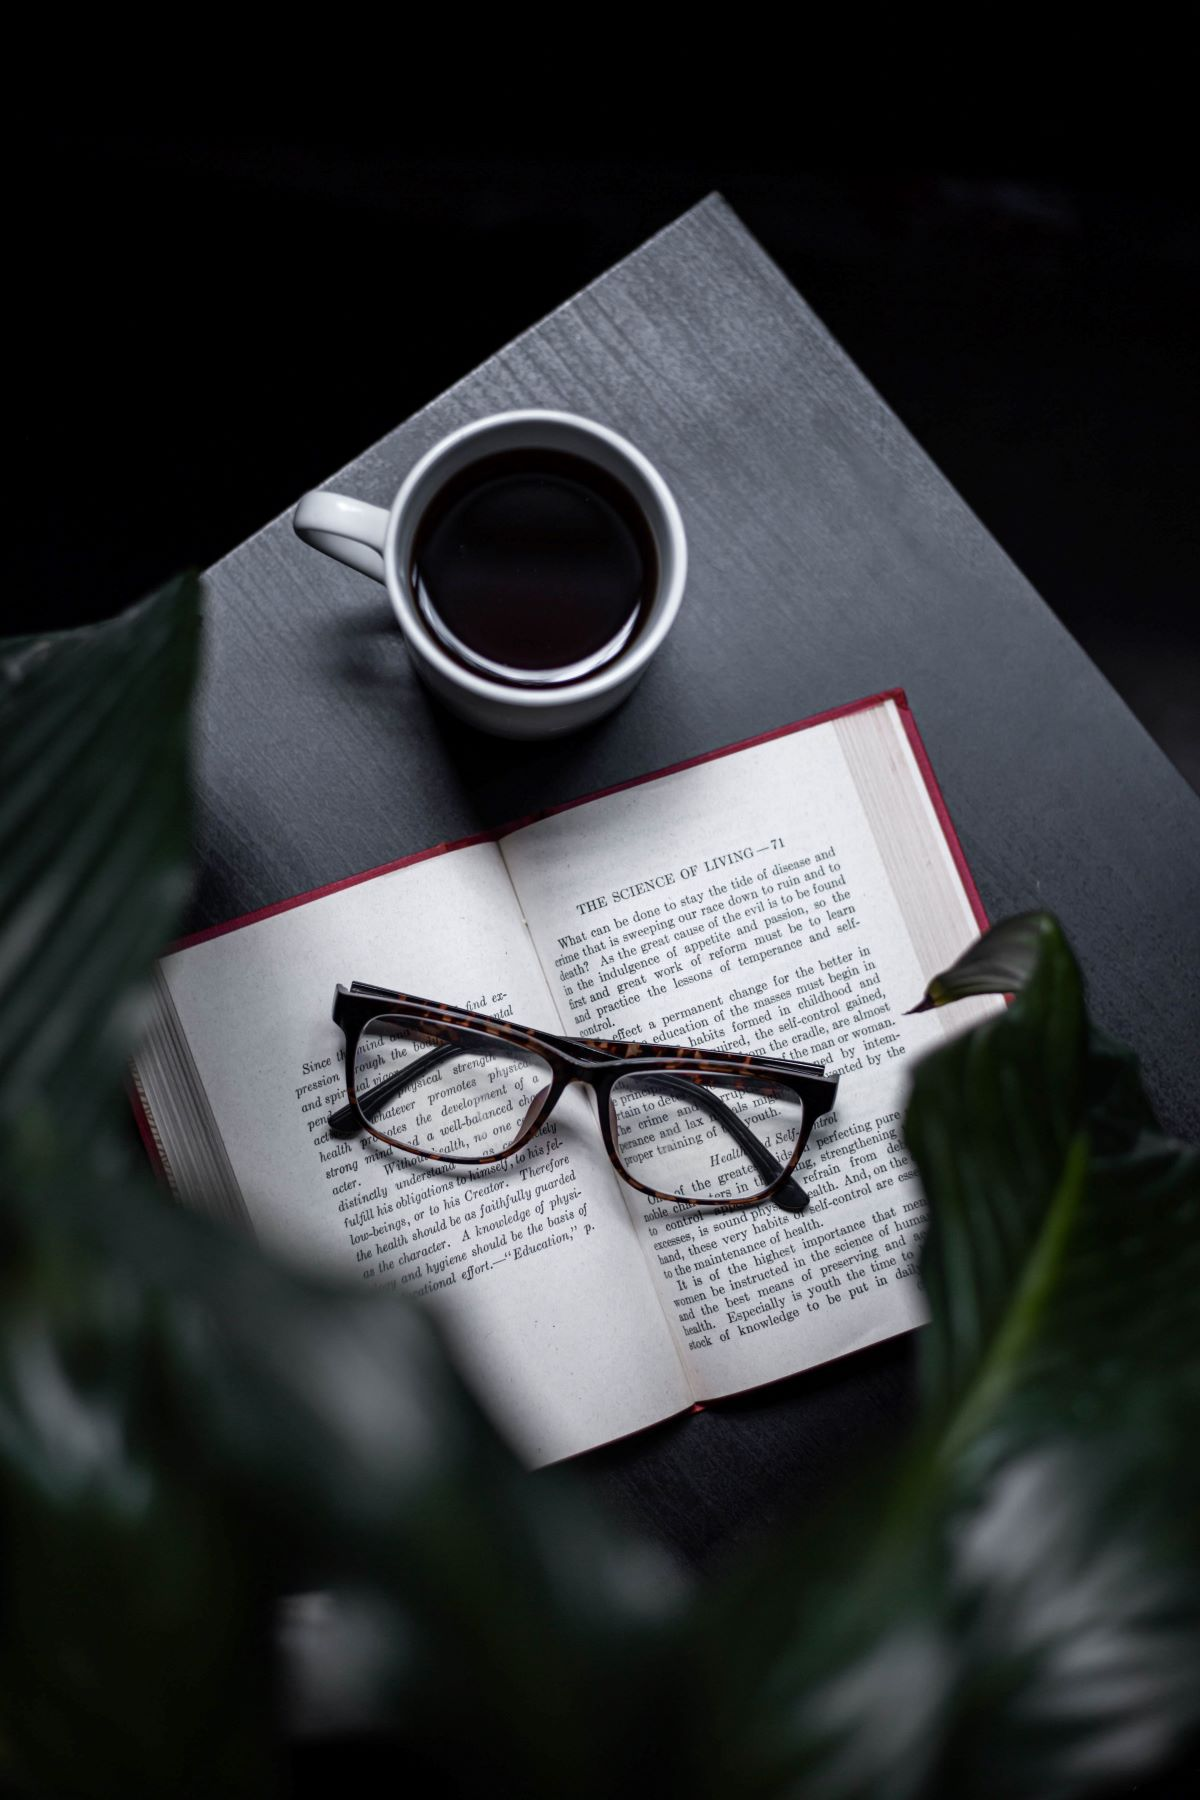 coffee book and reading glasses